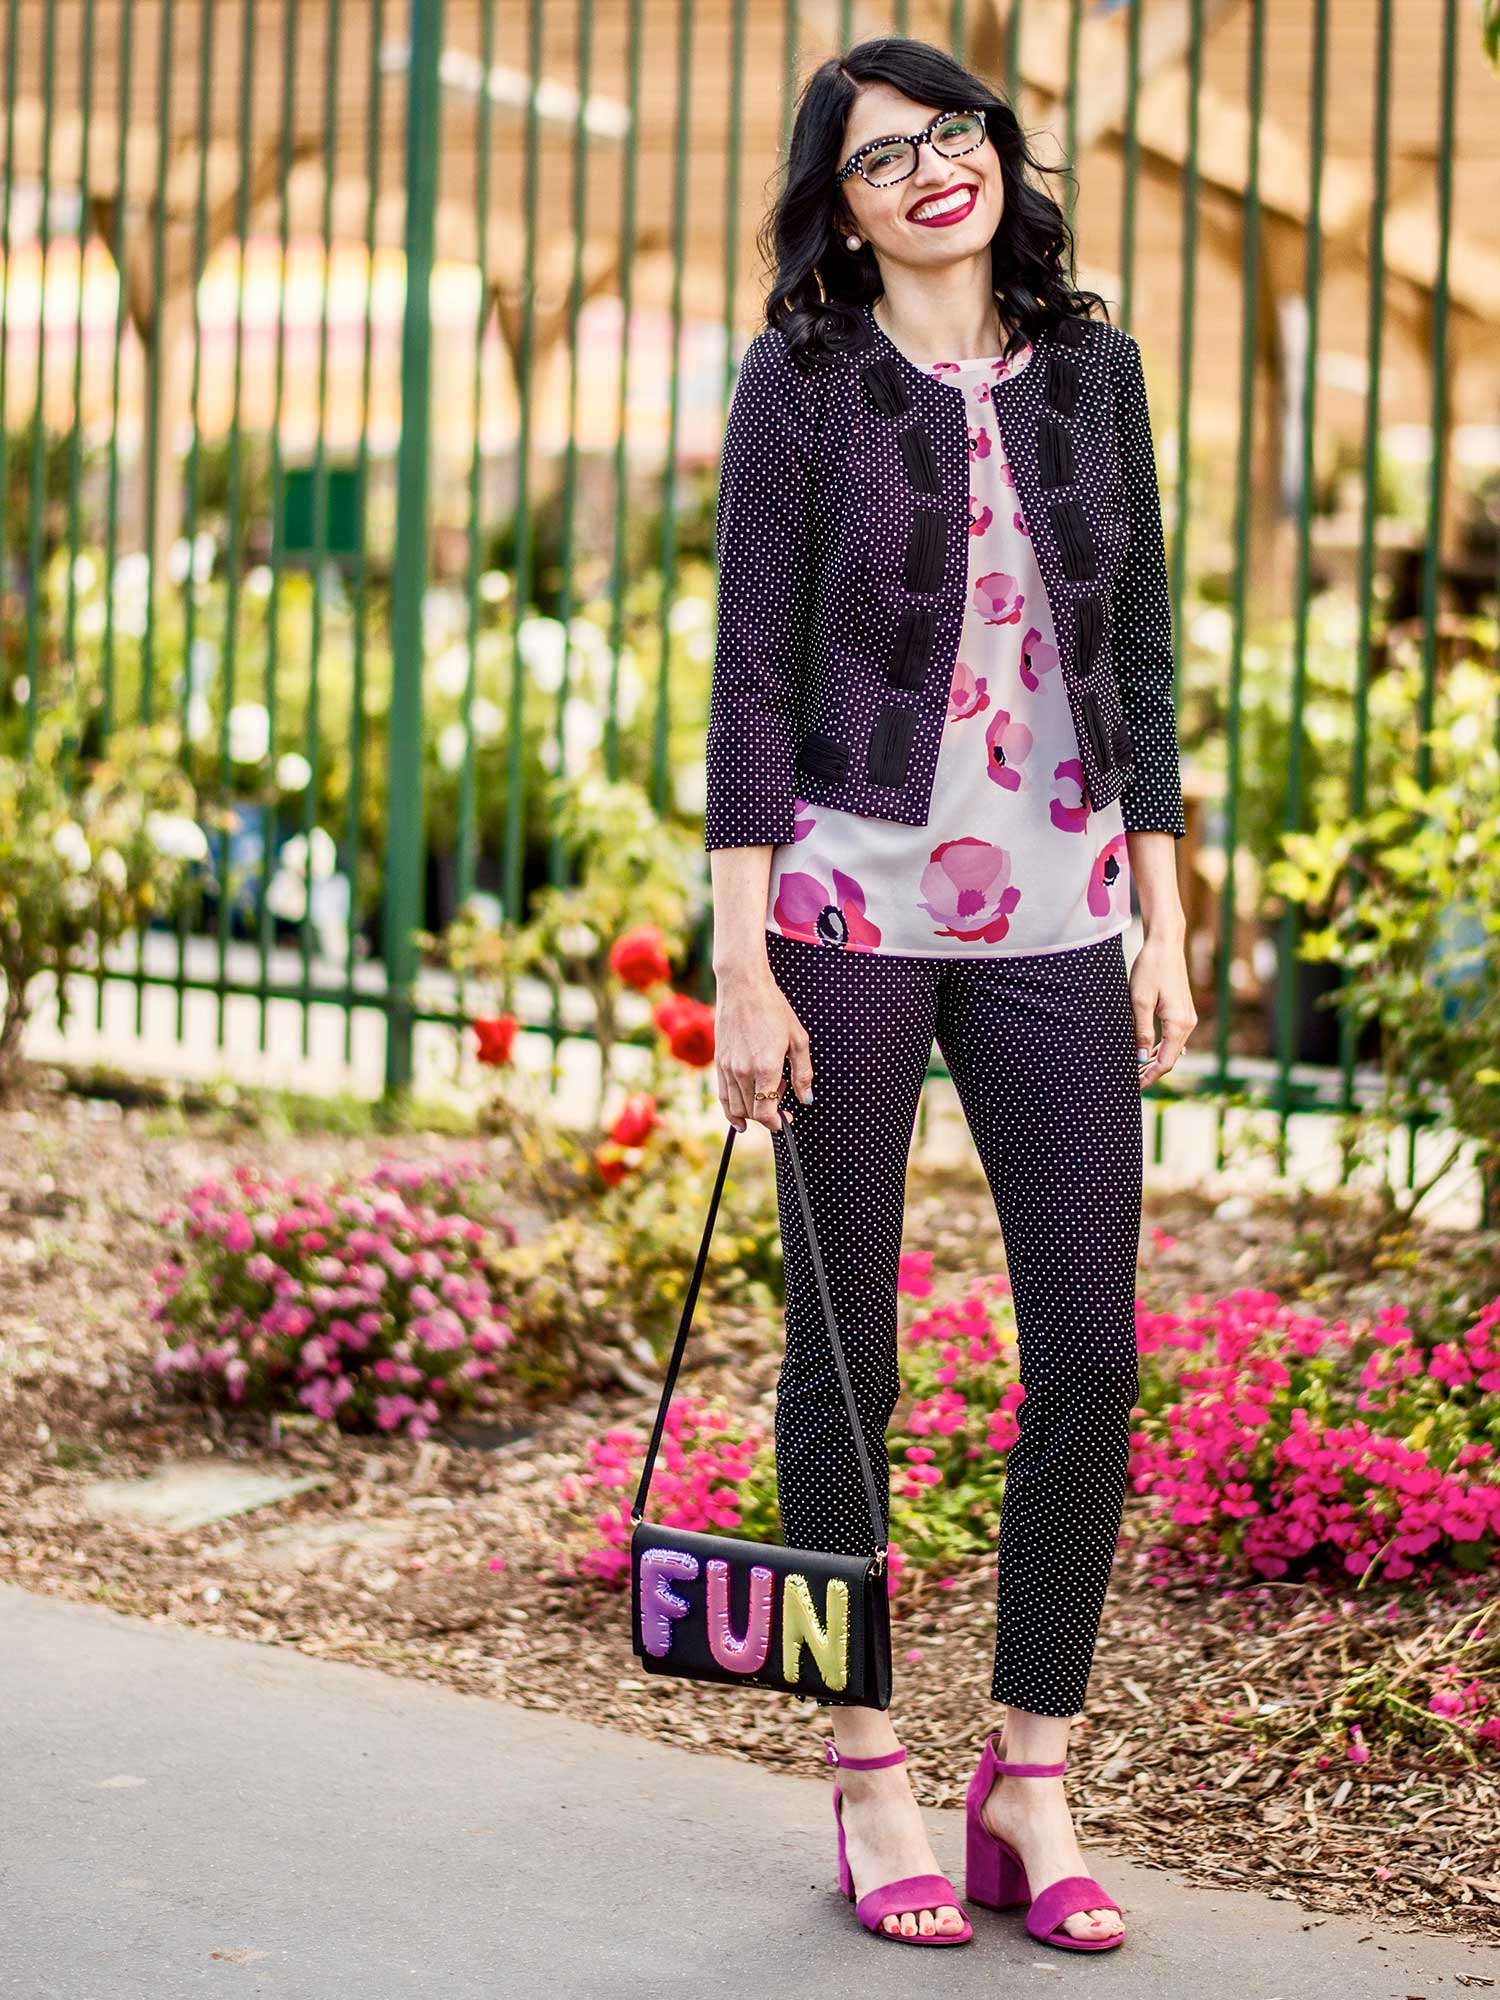 Jenna-Pilant-San-Diego-Style-Blogger-Lucky-Little-Mustardseed-Wearing-A-Suit-Can-Be-Fun-5